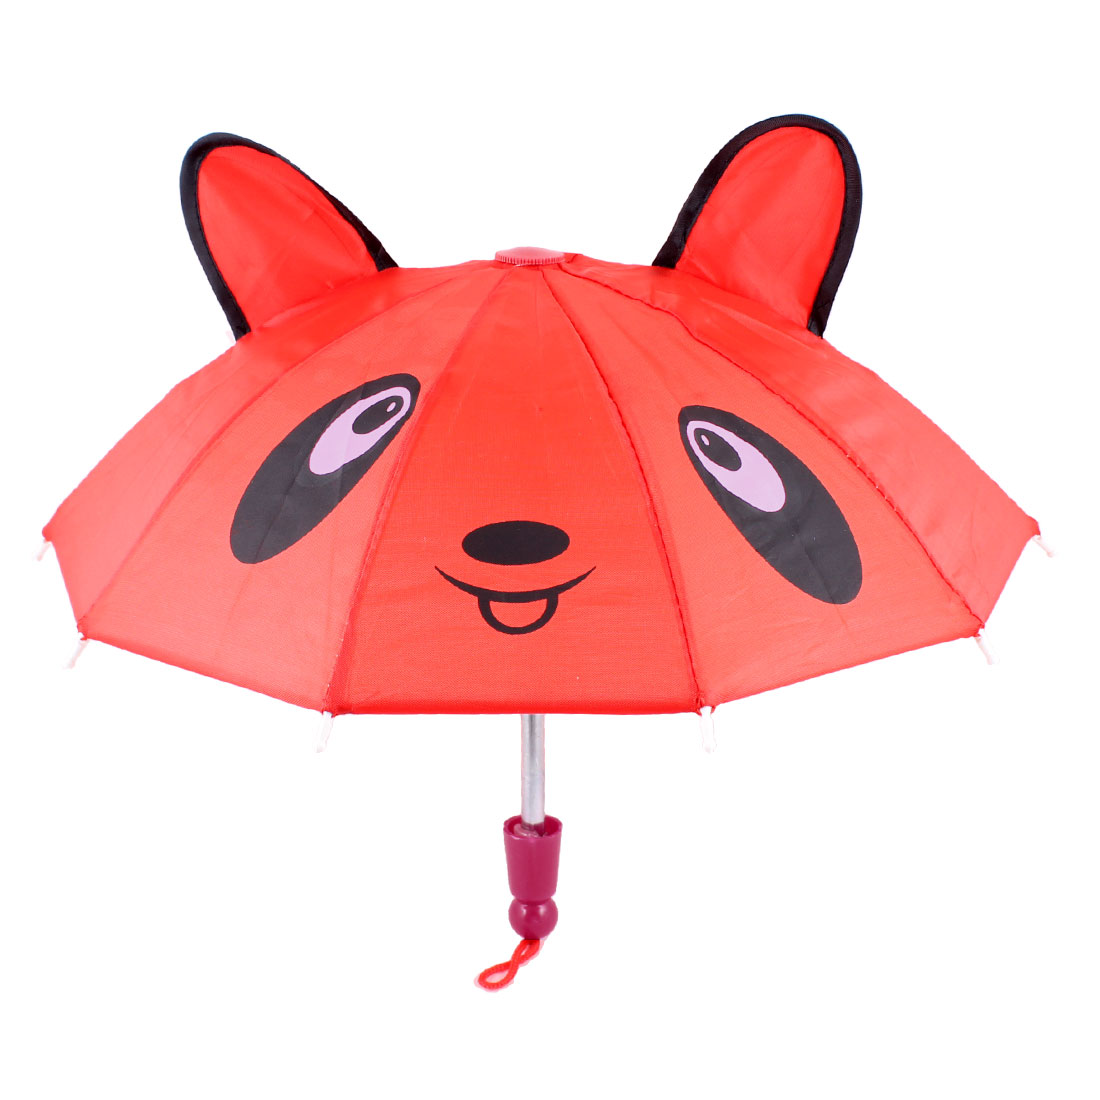 Kids Gift Cartoon Bear Head Pattern Foldable Umbrella Toy Red